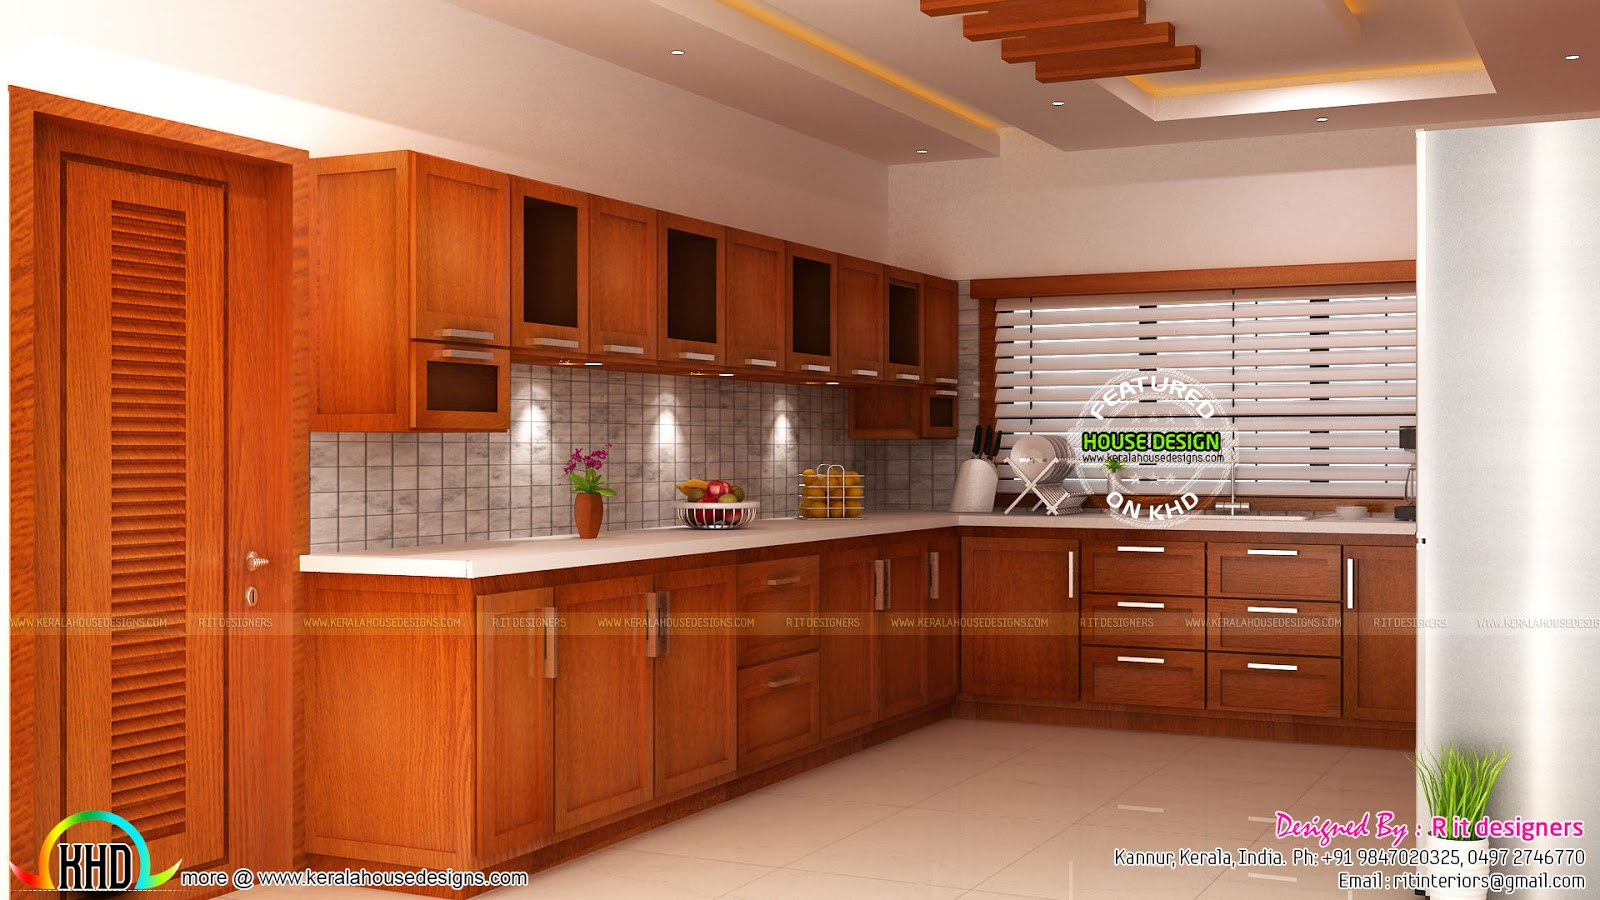 Modular Kitchen Cabinets India Home Design Ideas Modular